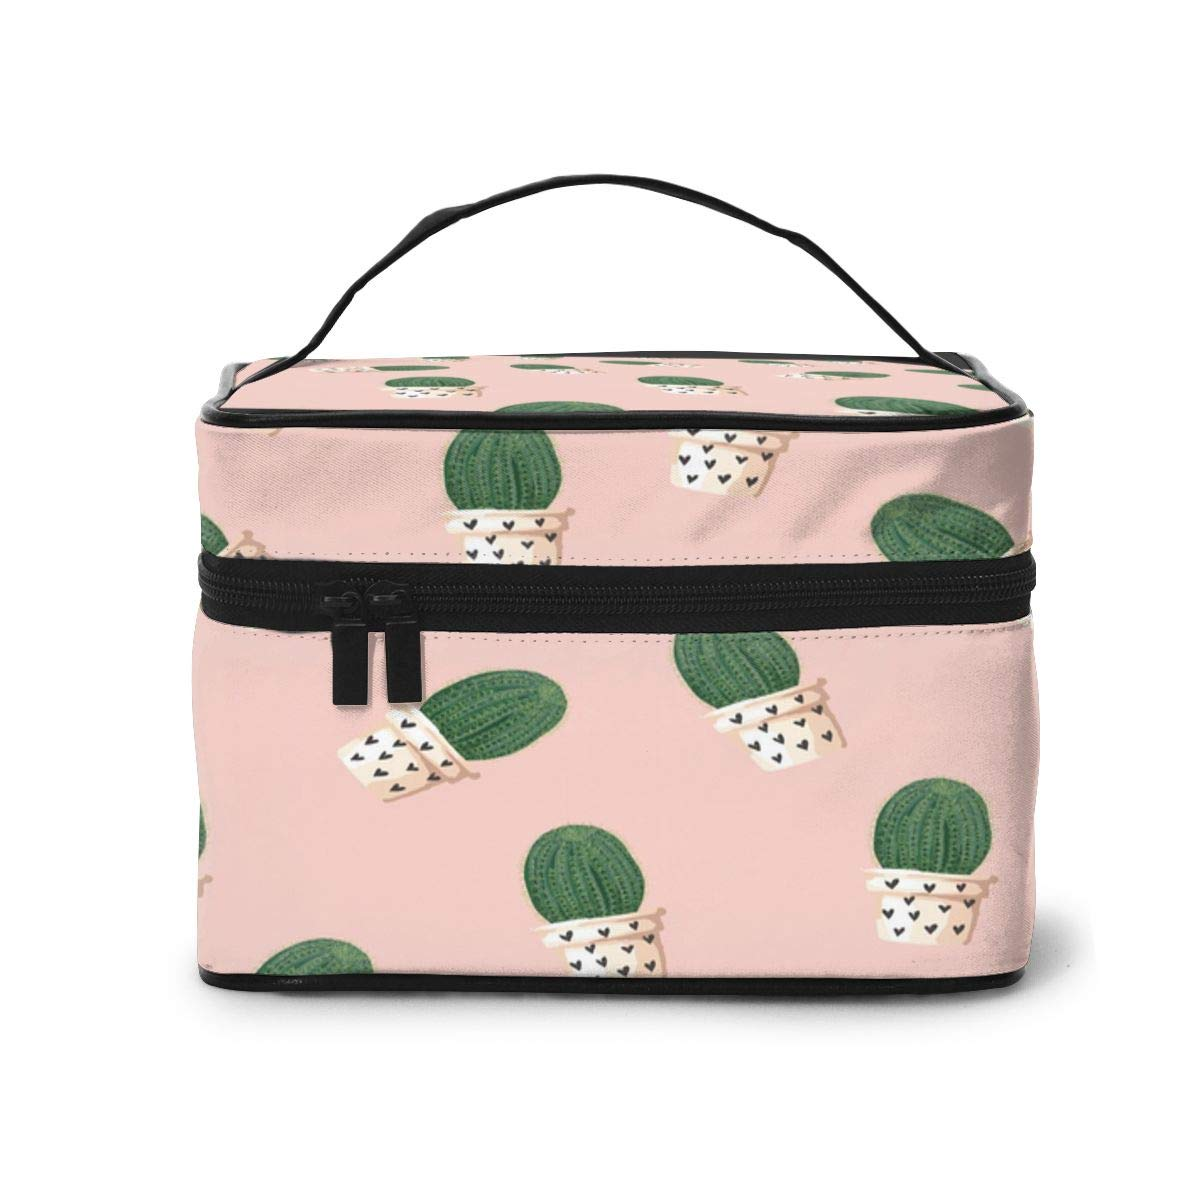 Travel Cosmetic Bag Pink CactusToietry Makeup Bag Pouch Tote Case Organizer Storage For Women Girls